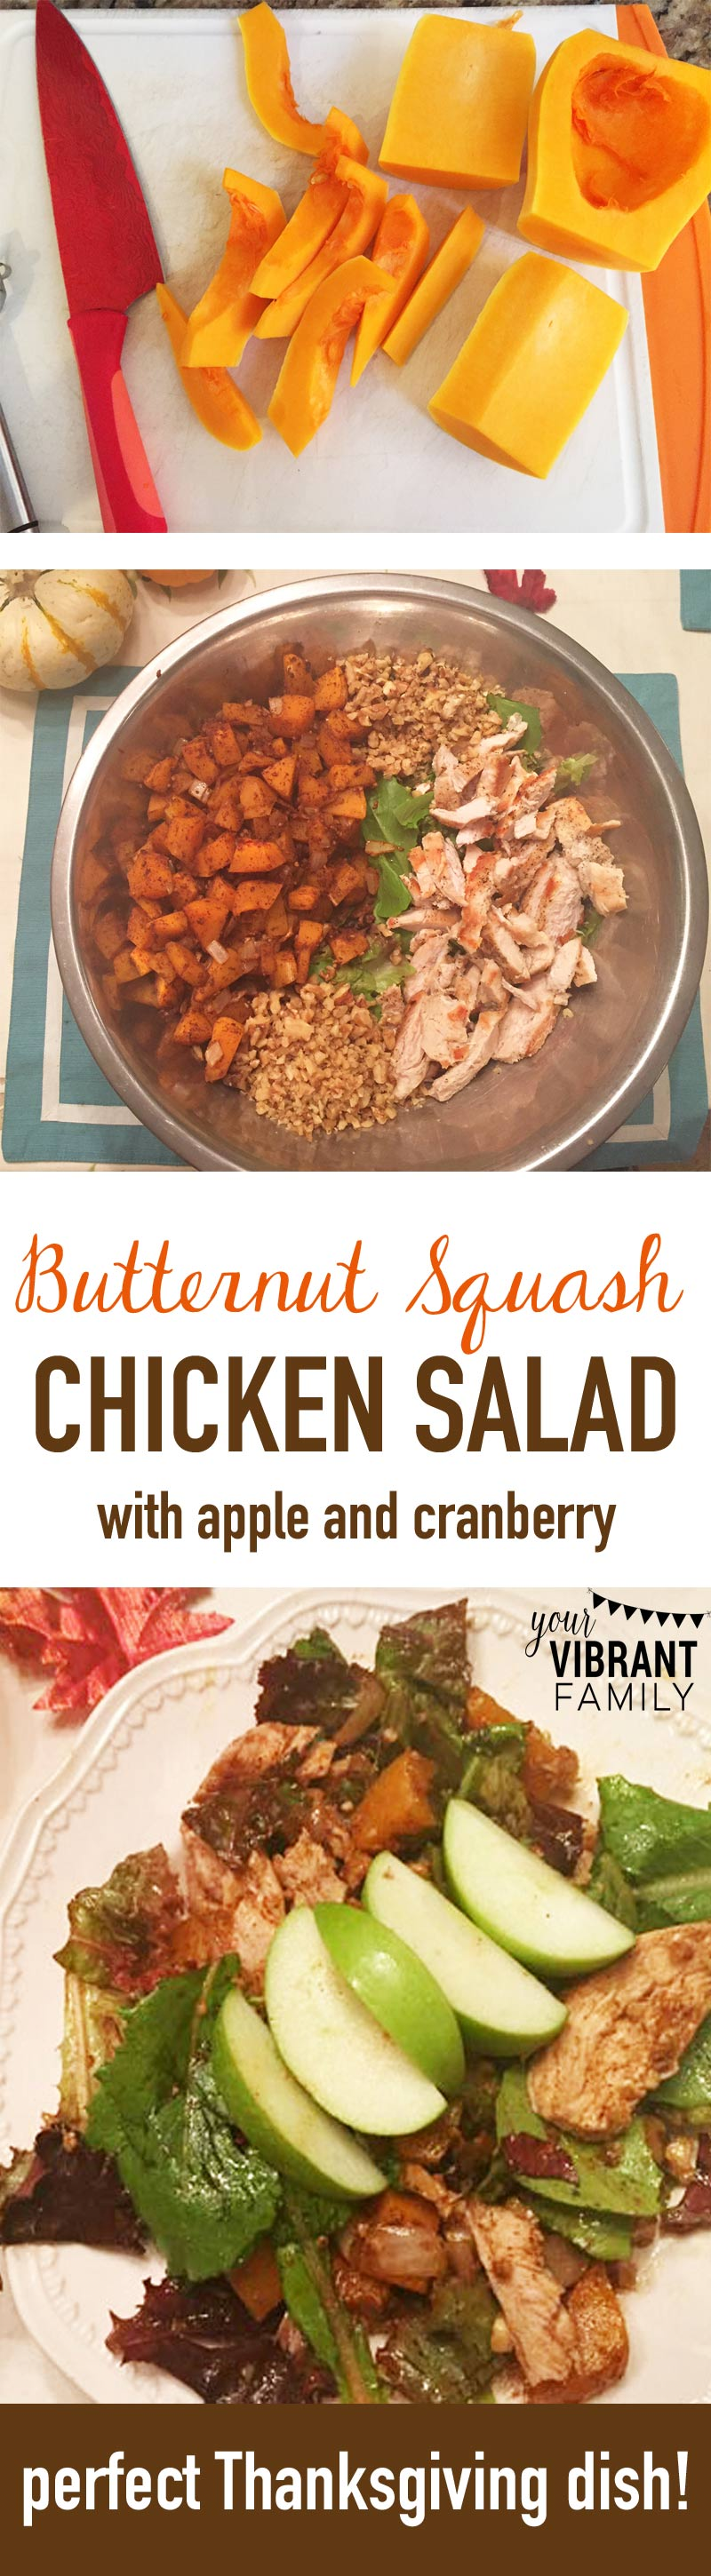 Looking for the perfect Thanksgiving side dish? Or an awesome salad dinner meal that captures the flavors of fall? You'll love this Butternut Squash Chicken Salad with apples and cranberry! It's what I bring every year to our family's holiday dinner!